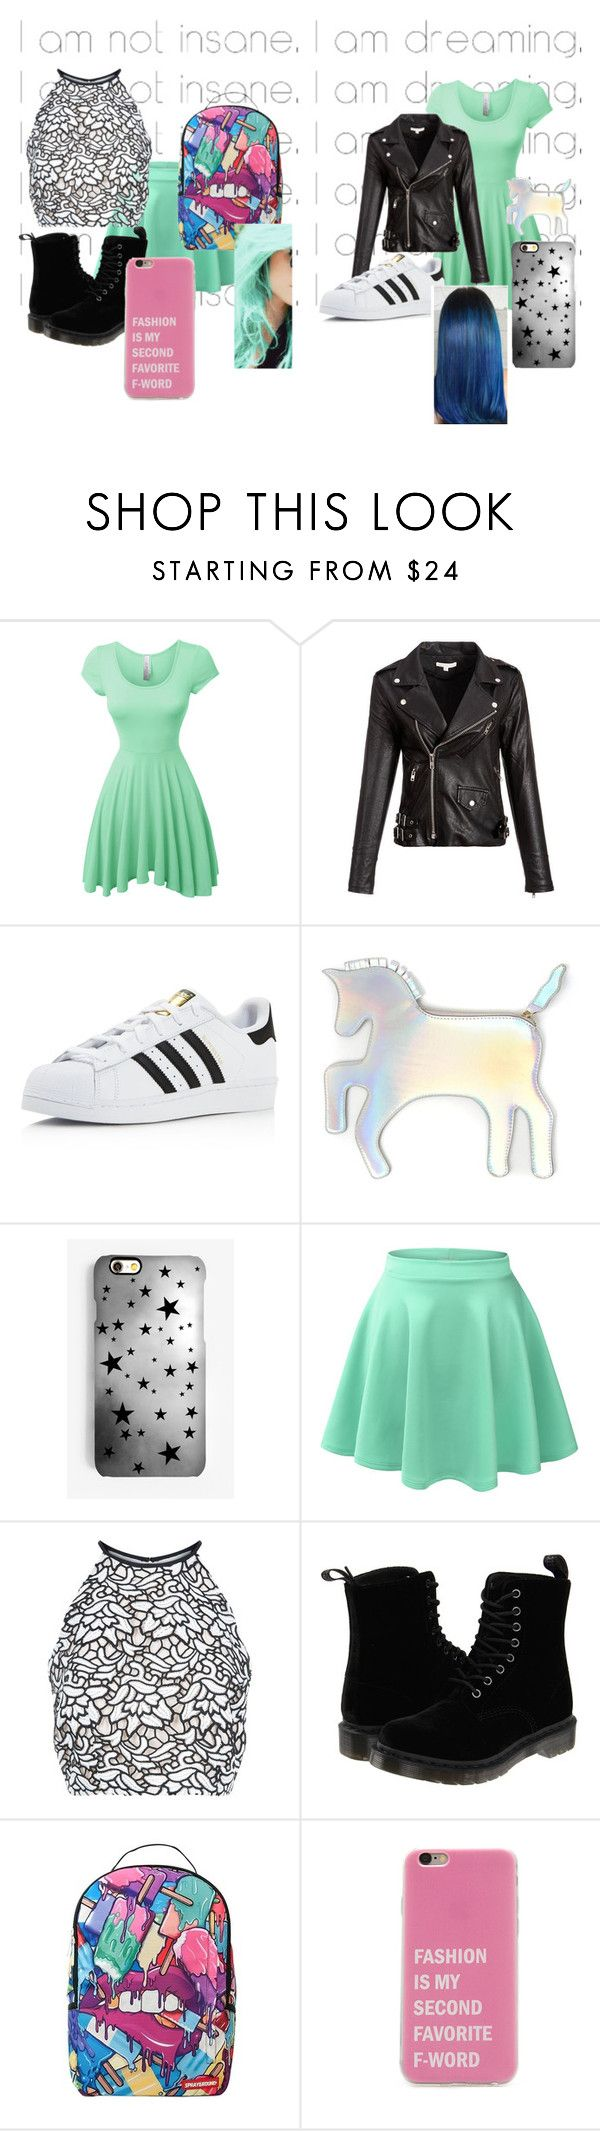 """""""I am not insane, I am dreaming"""" by djgirl1116 ❤ liked on Polyvore featuring LE3NO, adidas, WithChic, Rianna Phillips, Keepsake the Label, Dr. Martens and Sprayground"""